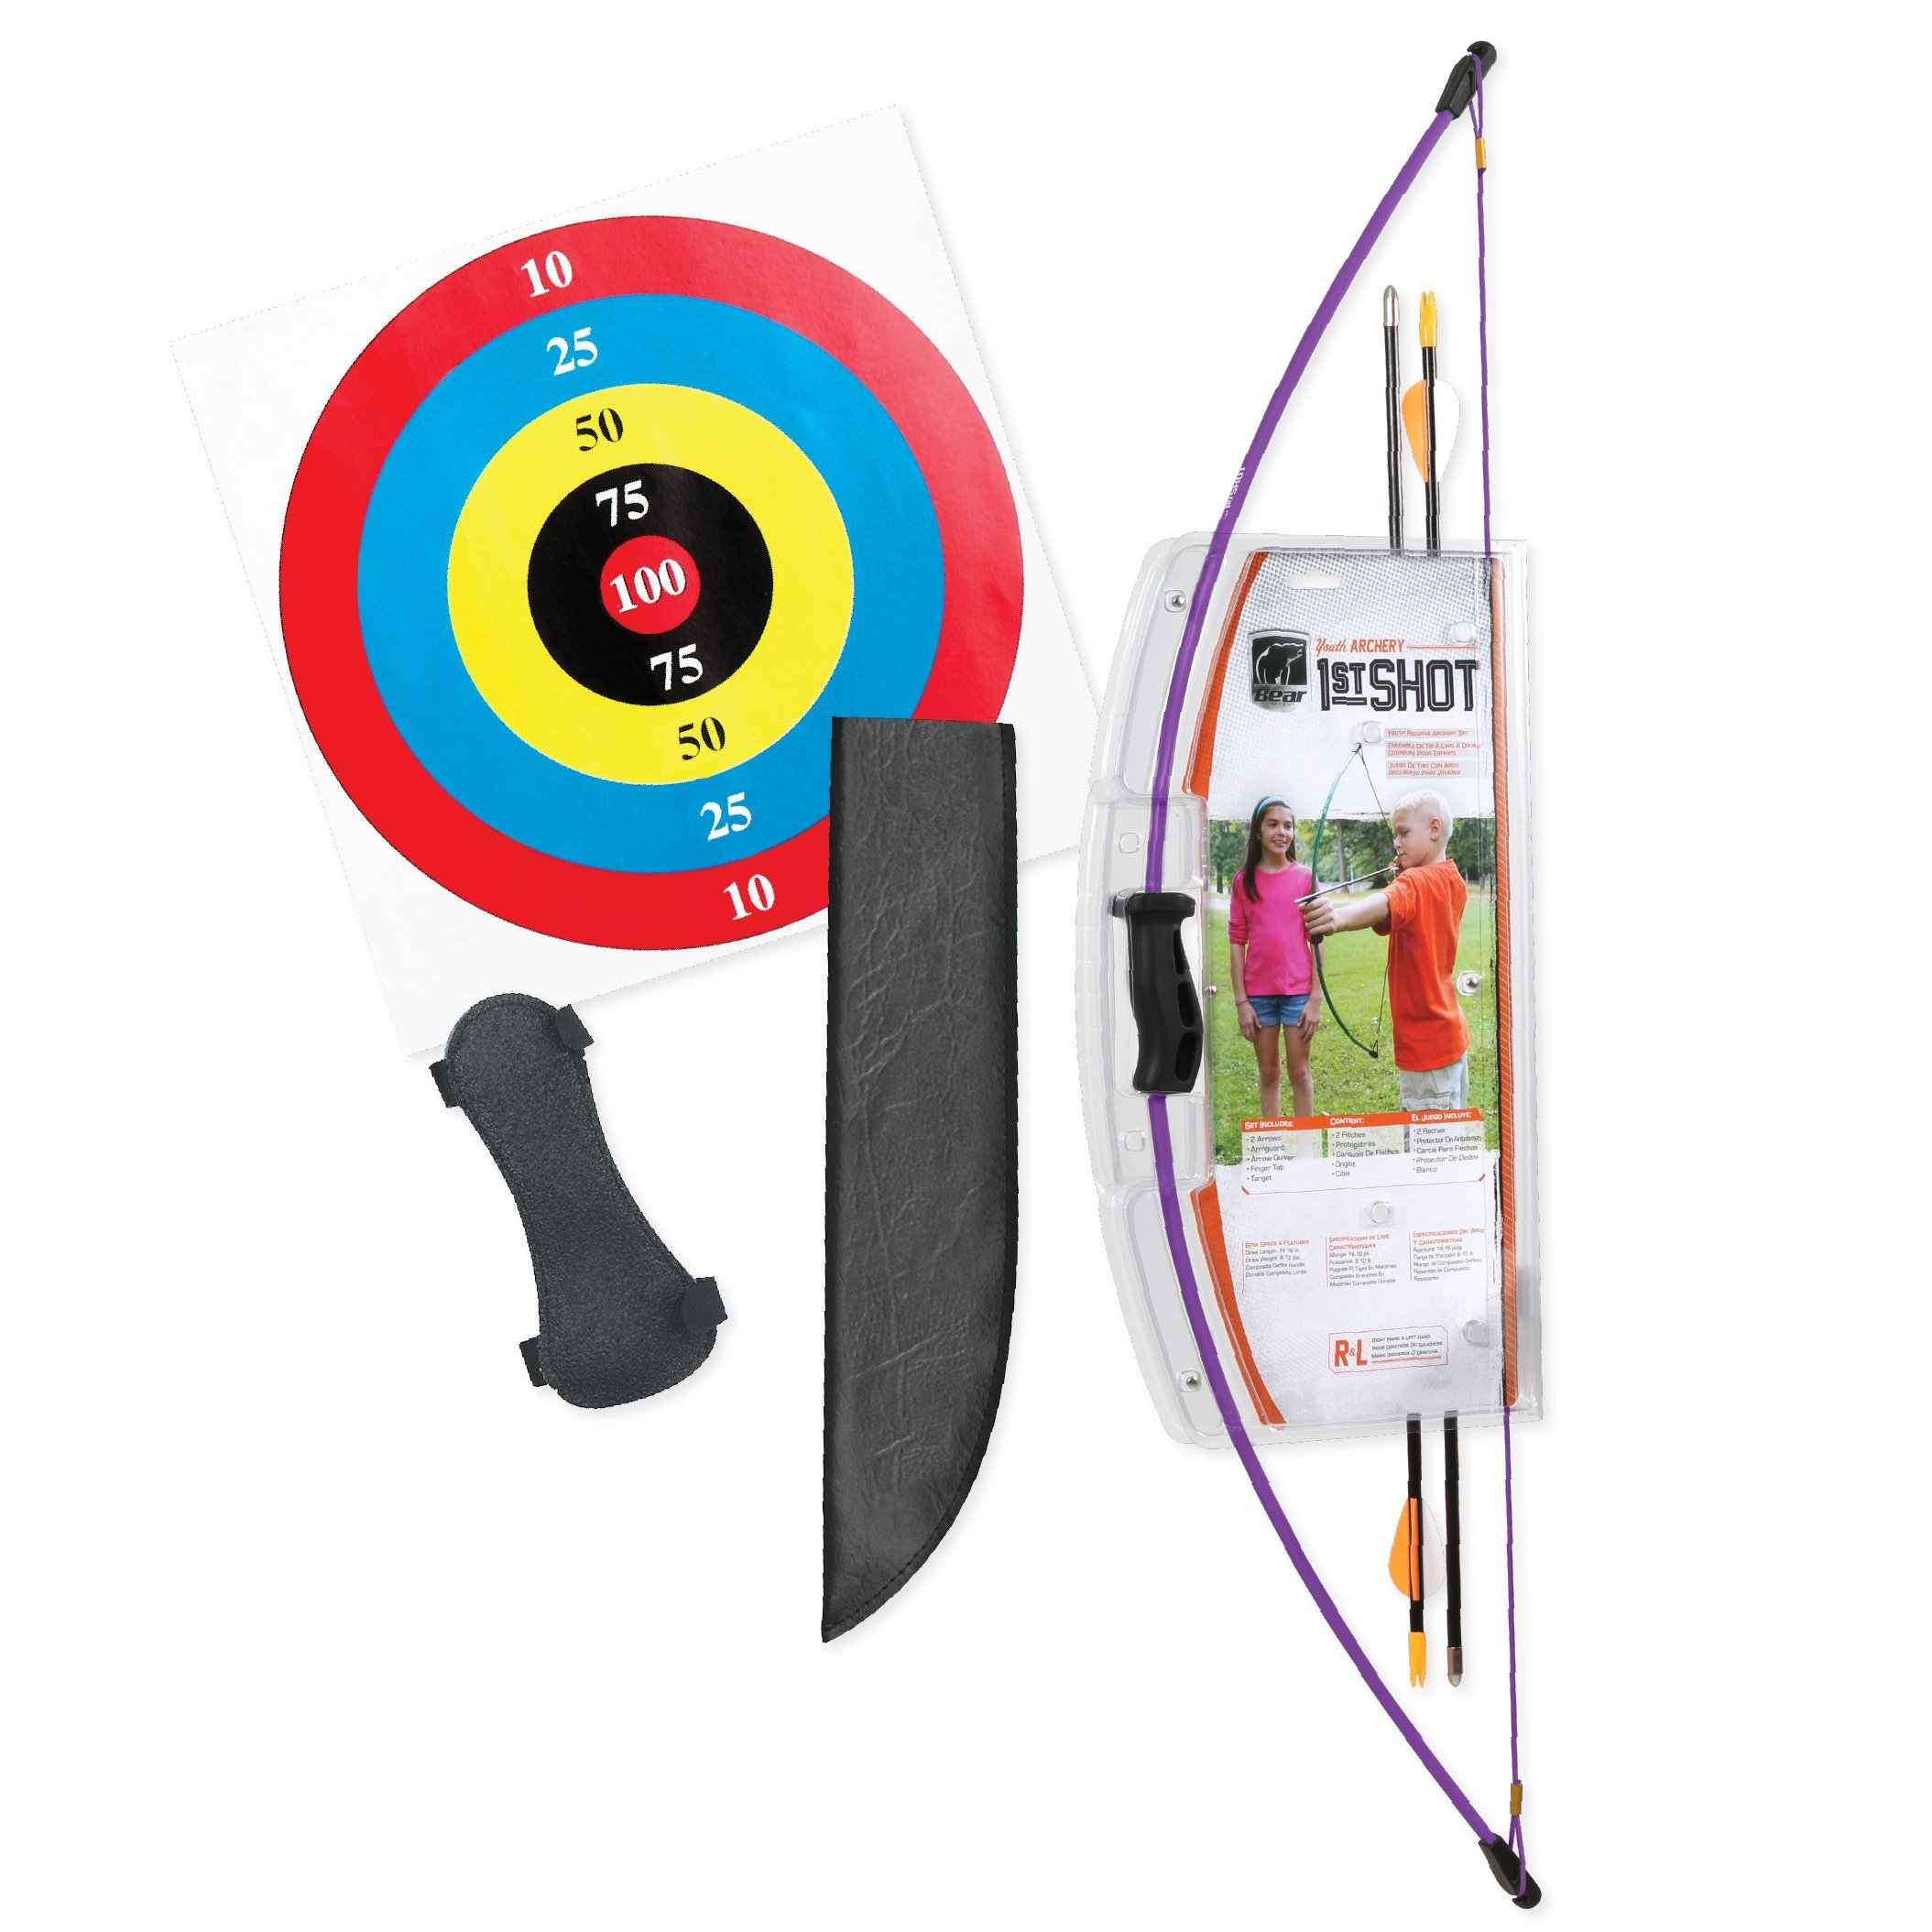 Bear Archery 1st Shot Youth Bow Set - Flo Purple by Bear Archery